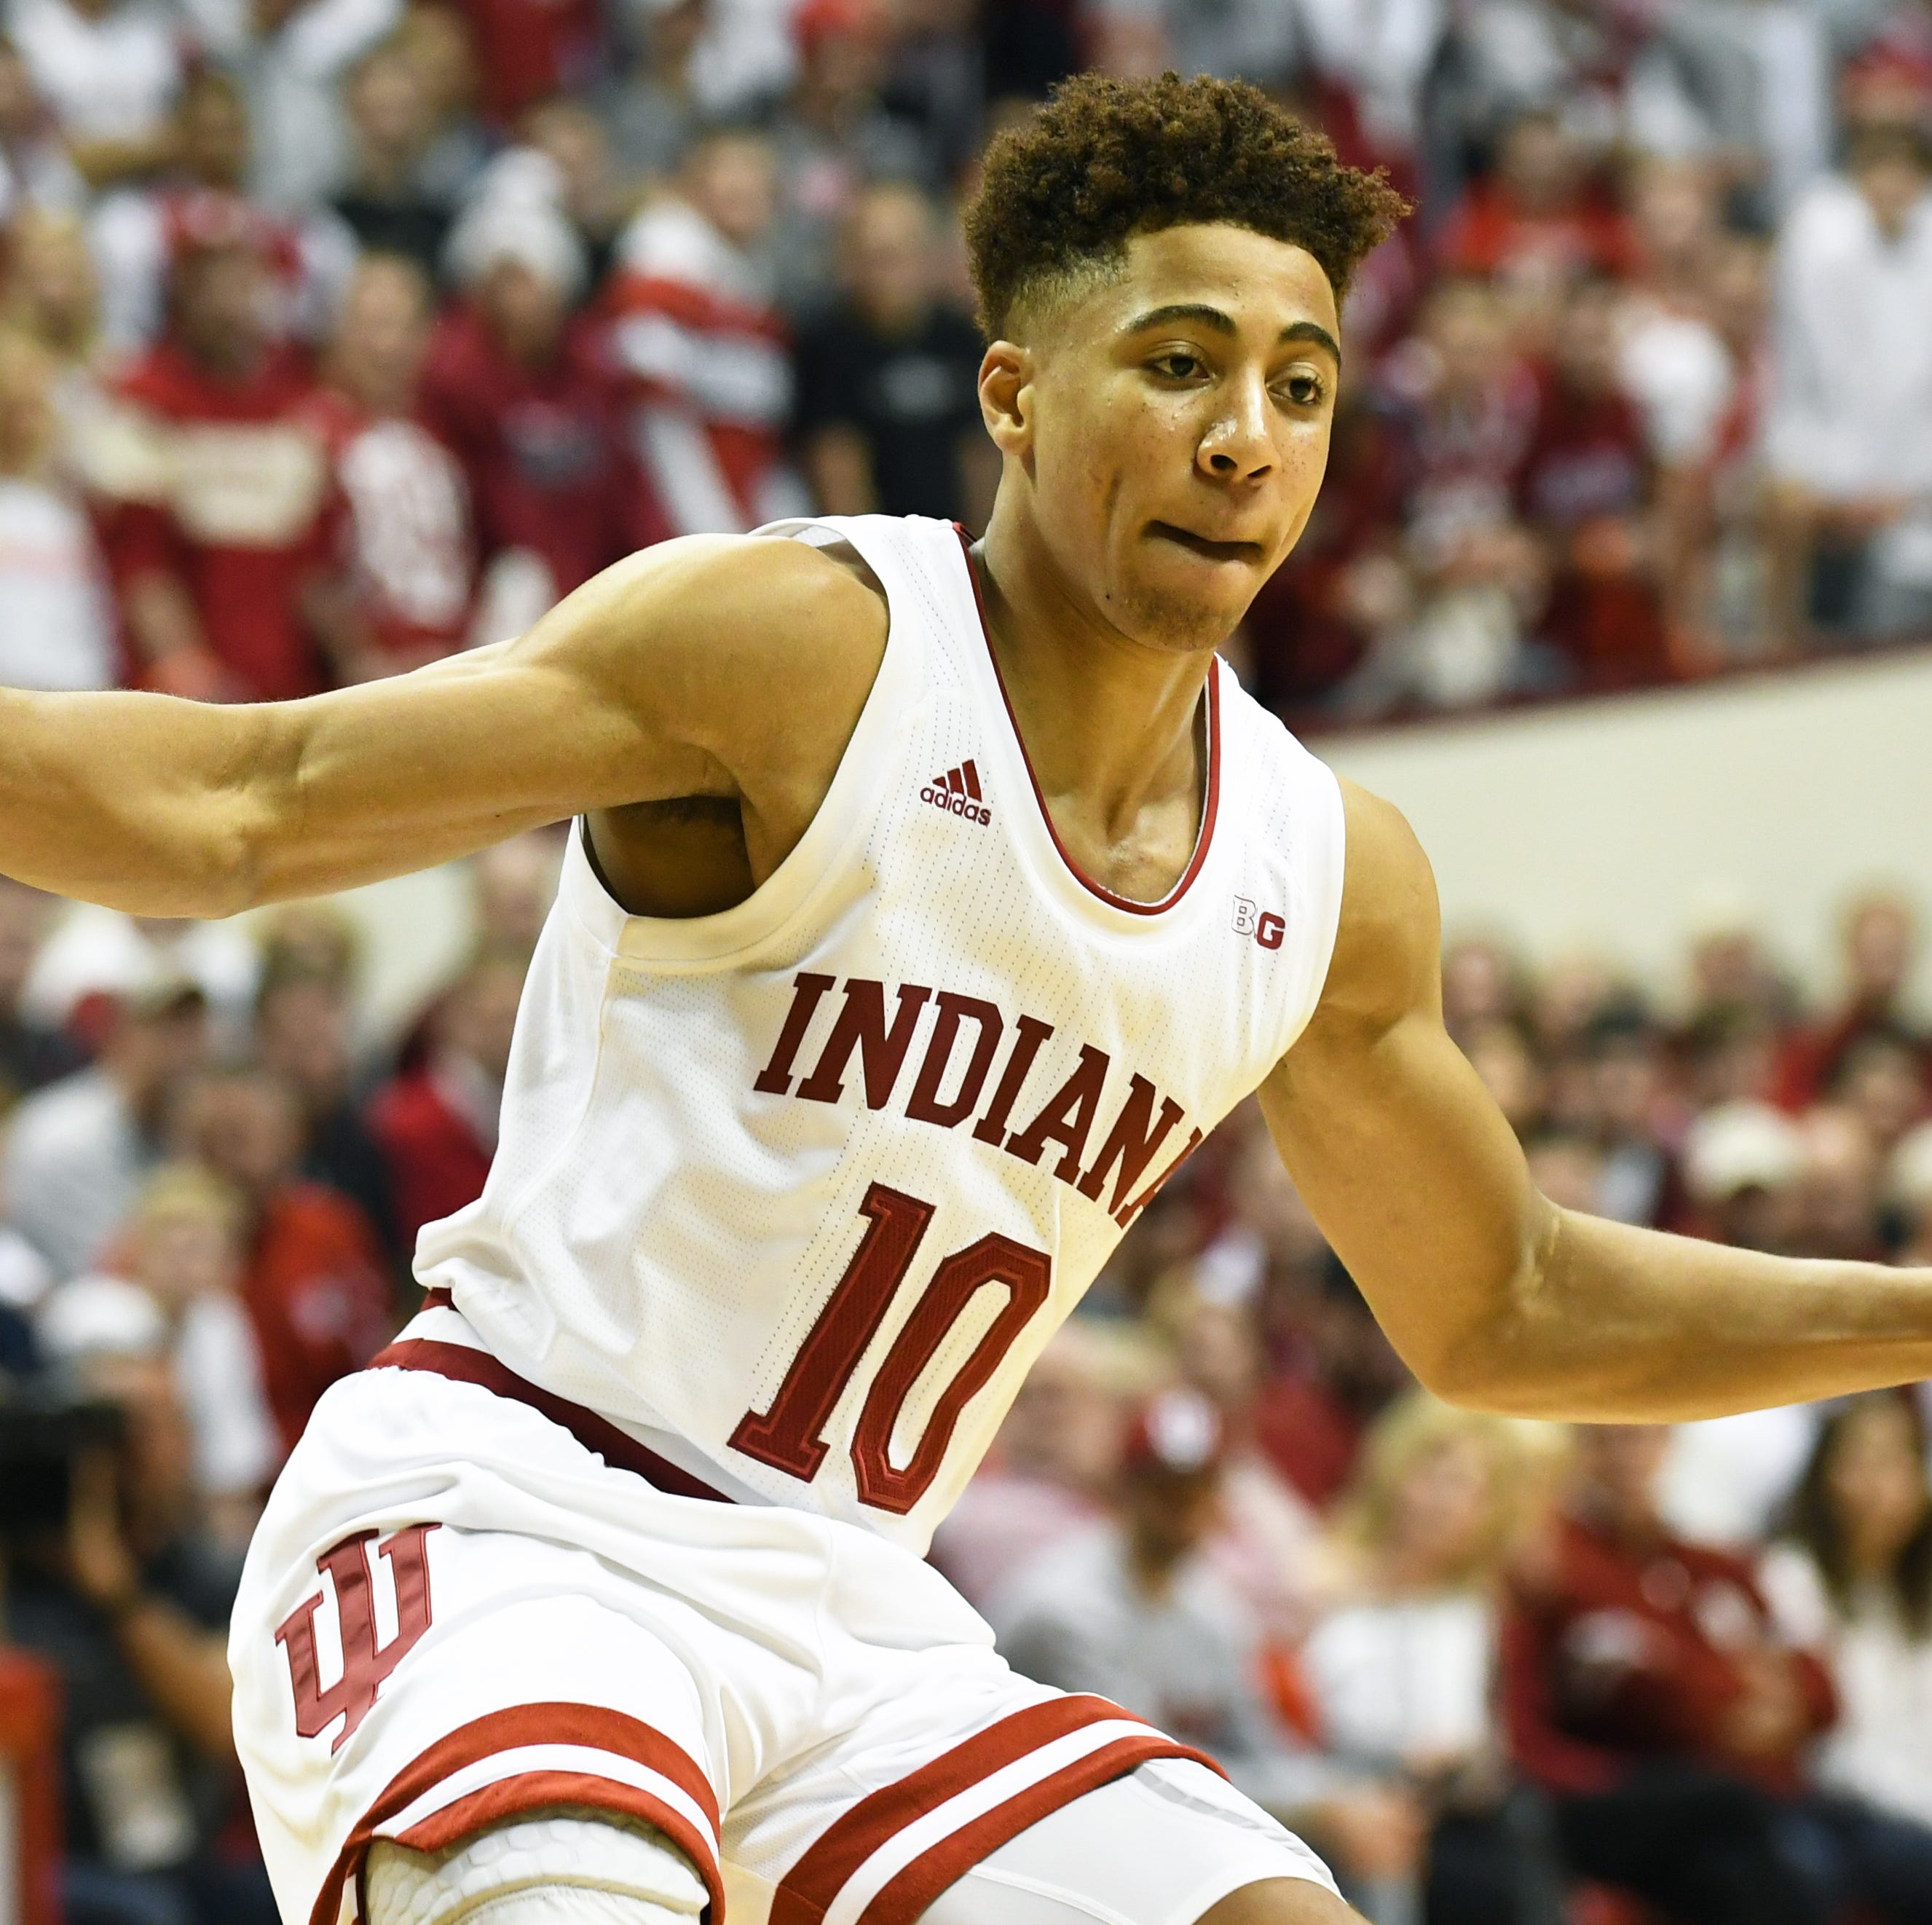 Perhaps overlooked in IU's recruiting class, Rob Phinisee quickly making PG spot his own